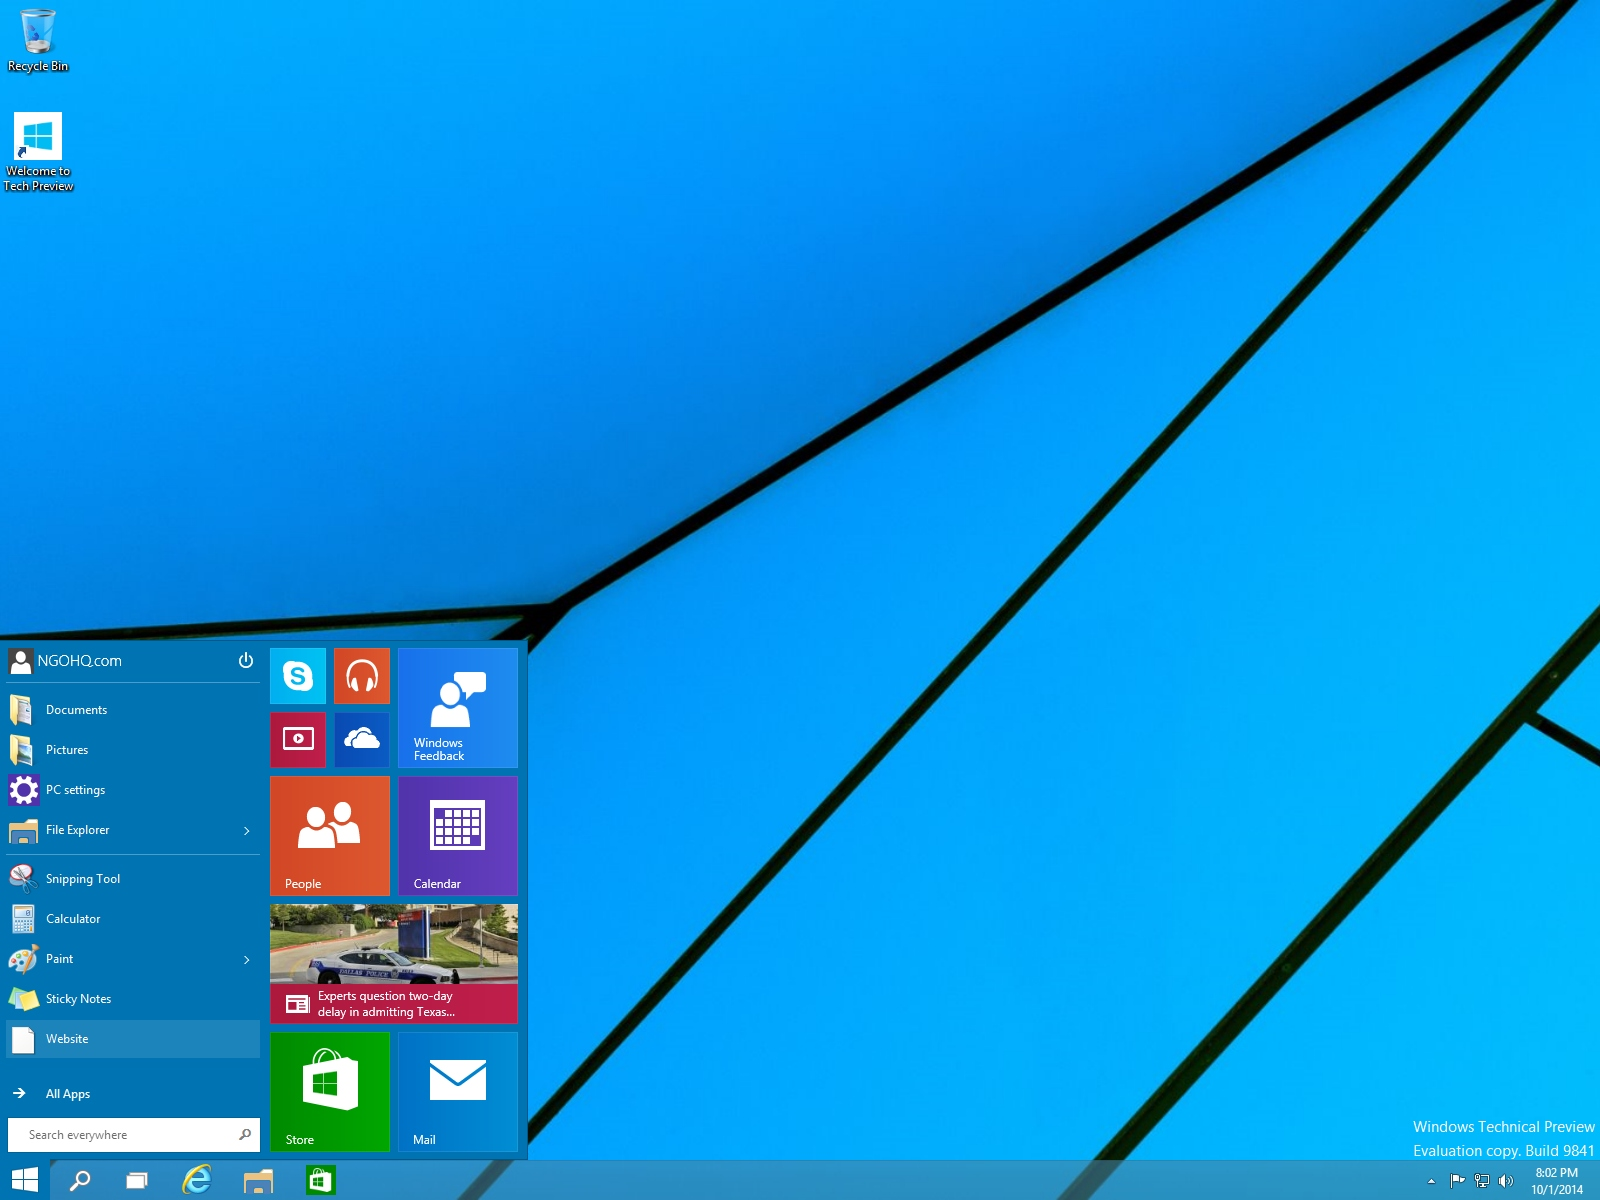 windows 10 technical preview 32 bit 2 94gb download windows 10 1600x1200